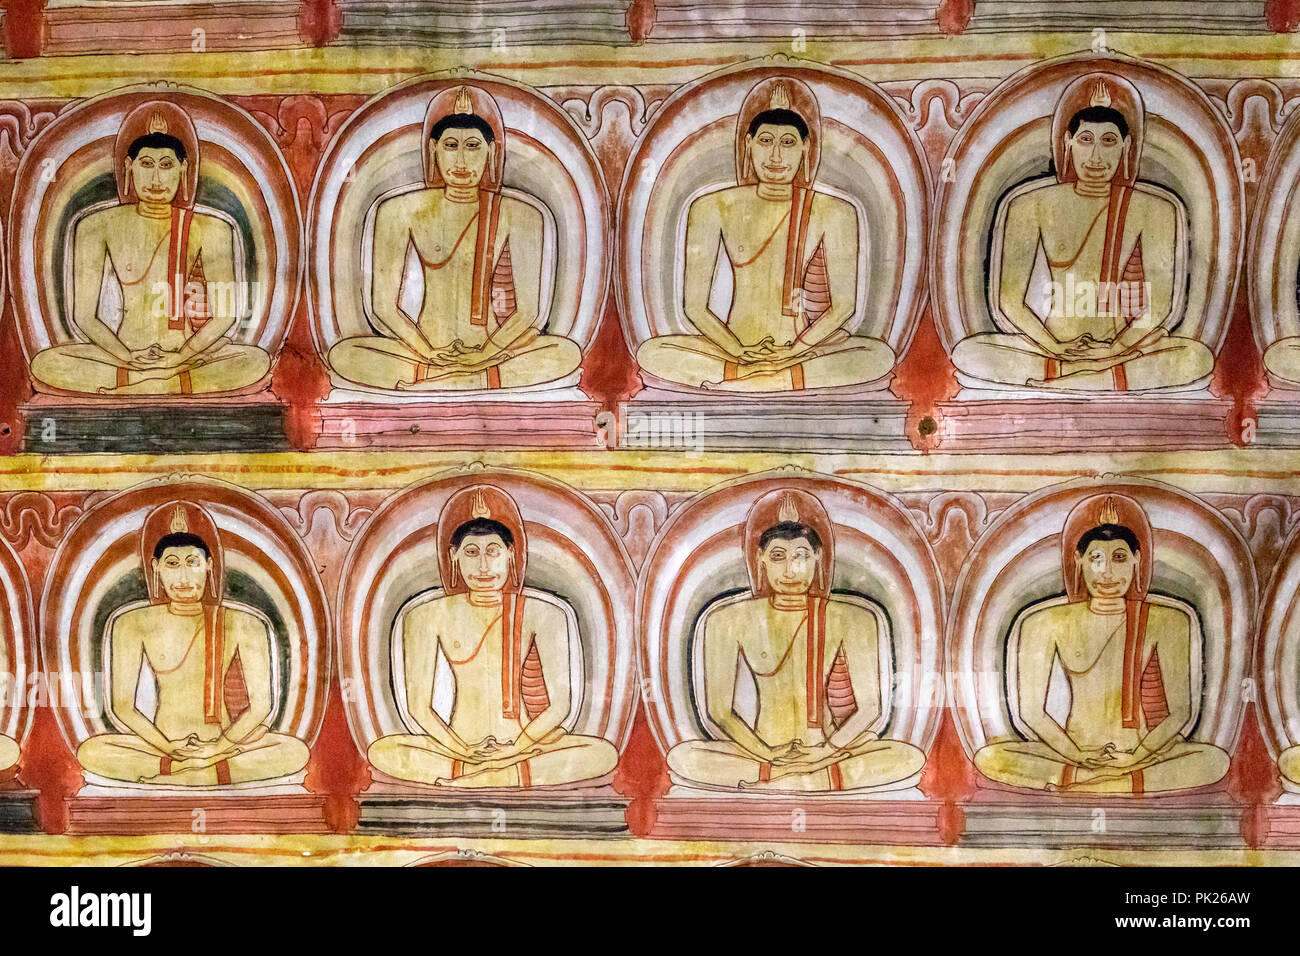 Images of Buddha, Cave of the Great Kings, Dambulla Cave temple, Sri Lanka - Stock Image